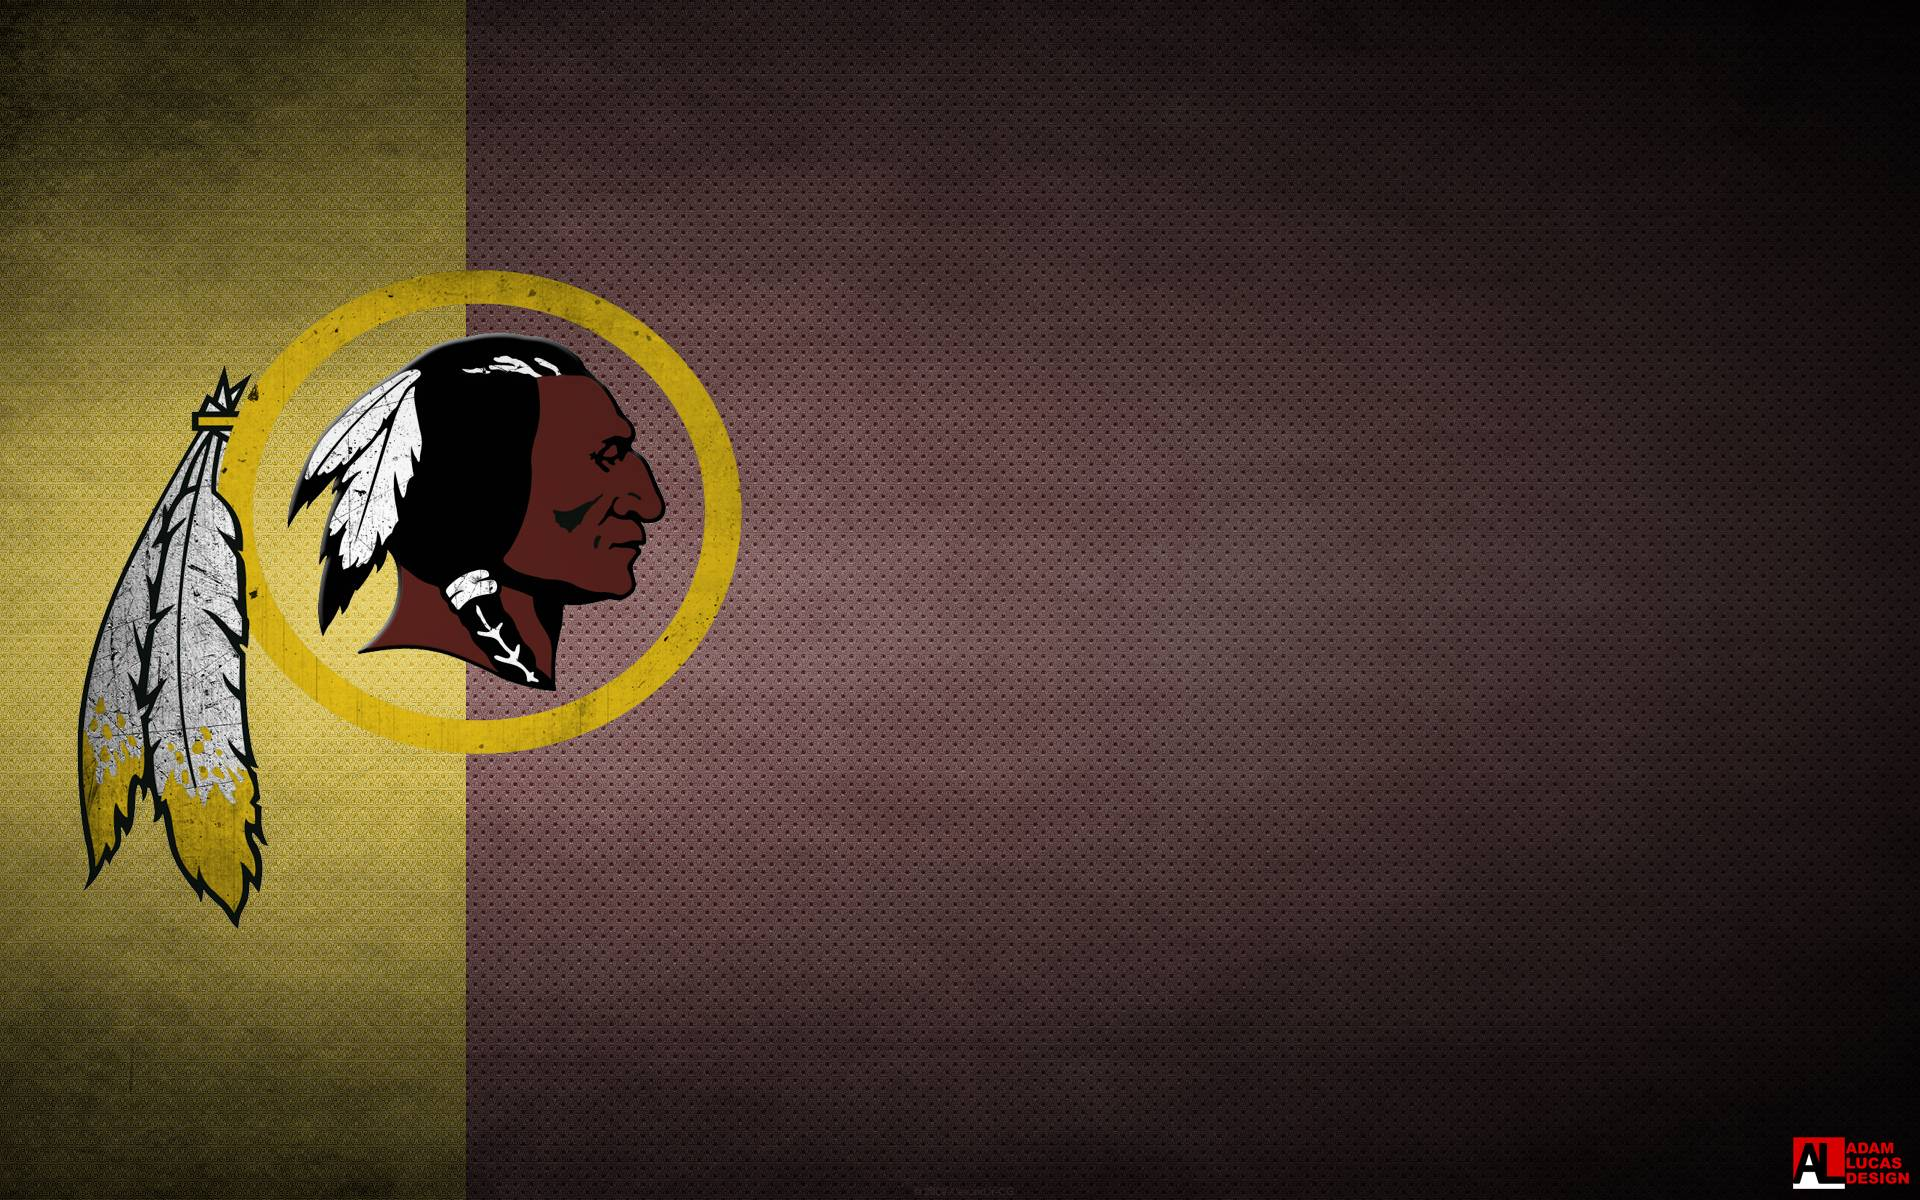 Download-free-redskins-for-your-mobile-phone-most-1920%C3%97-Redskins-Adorab-wallpaper-wpc9004409